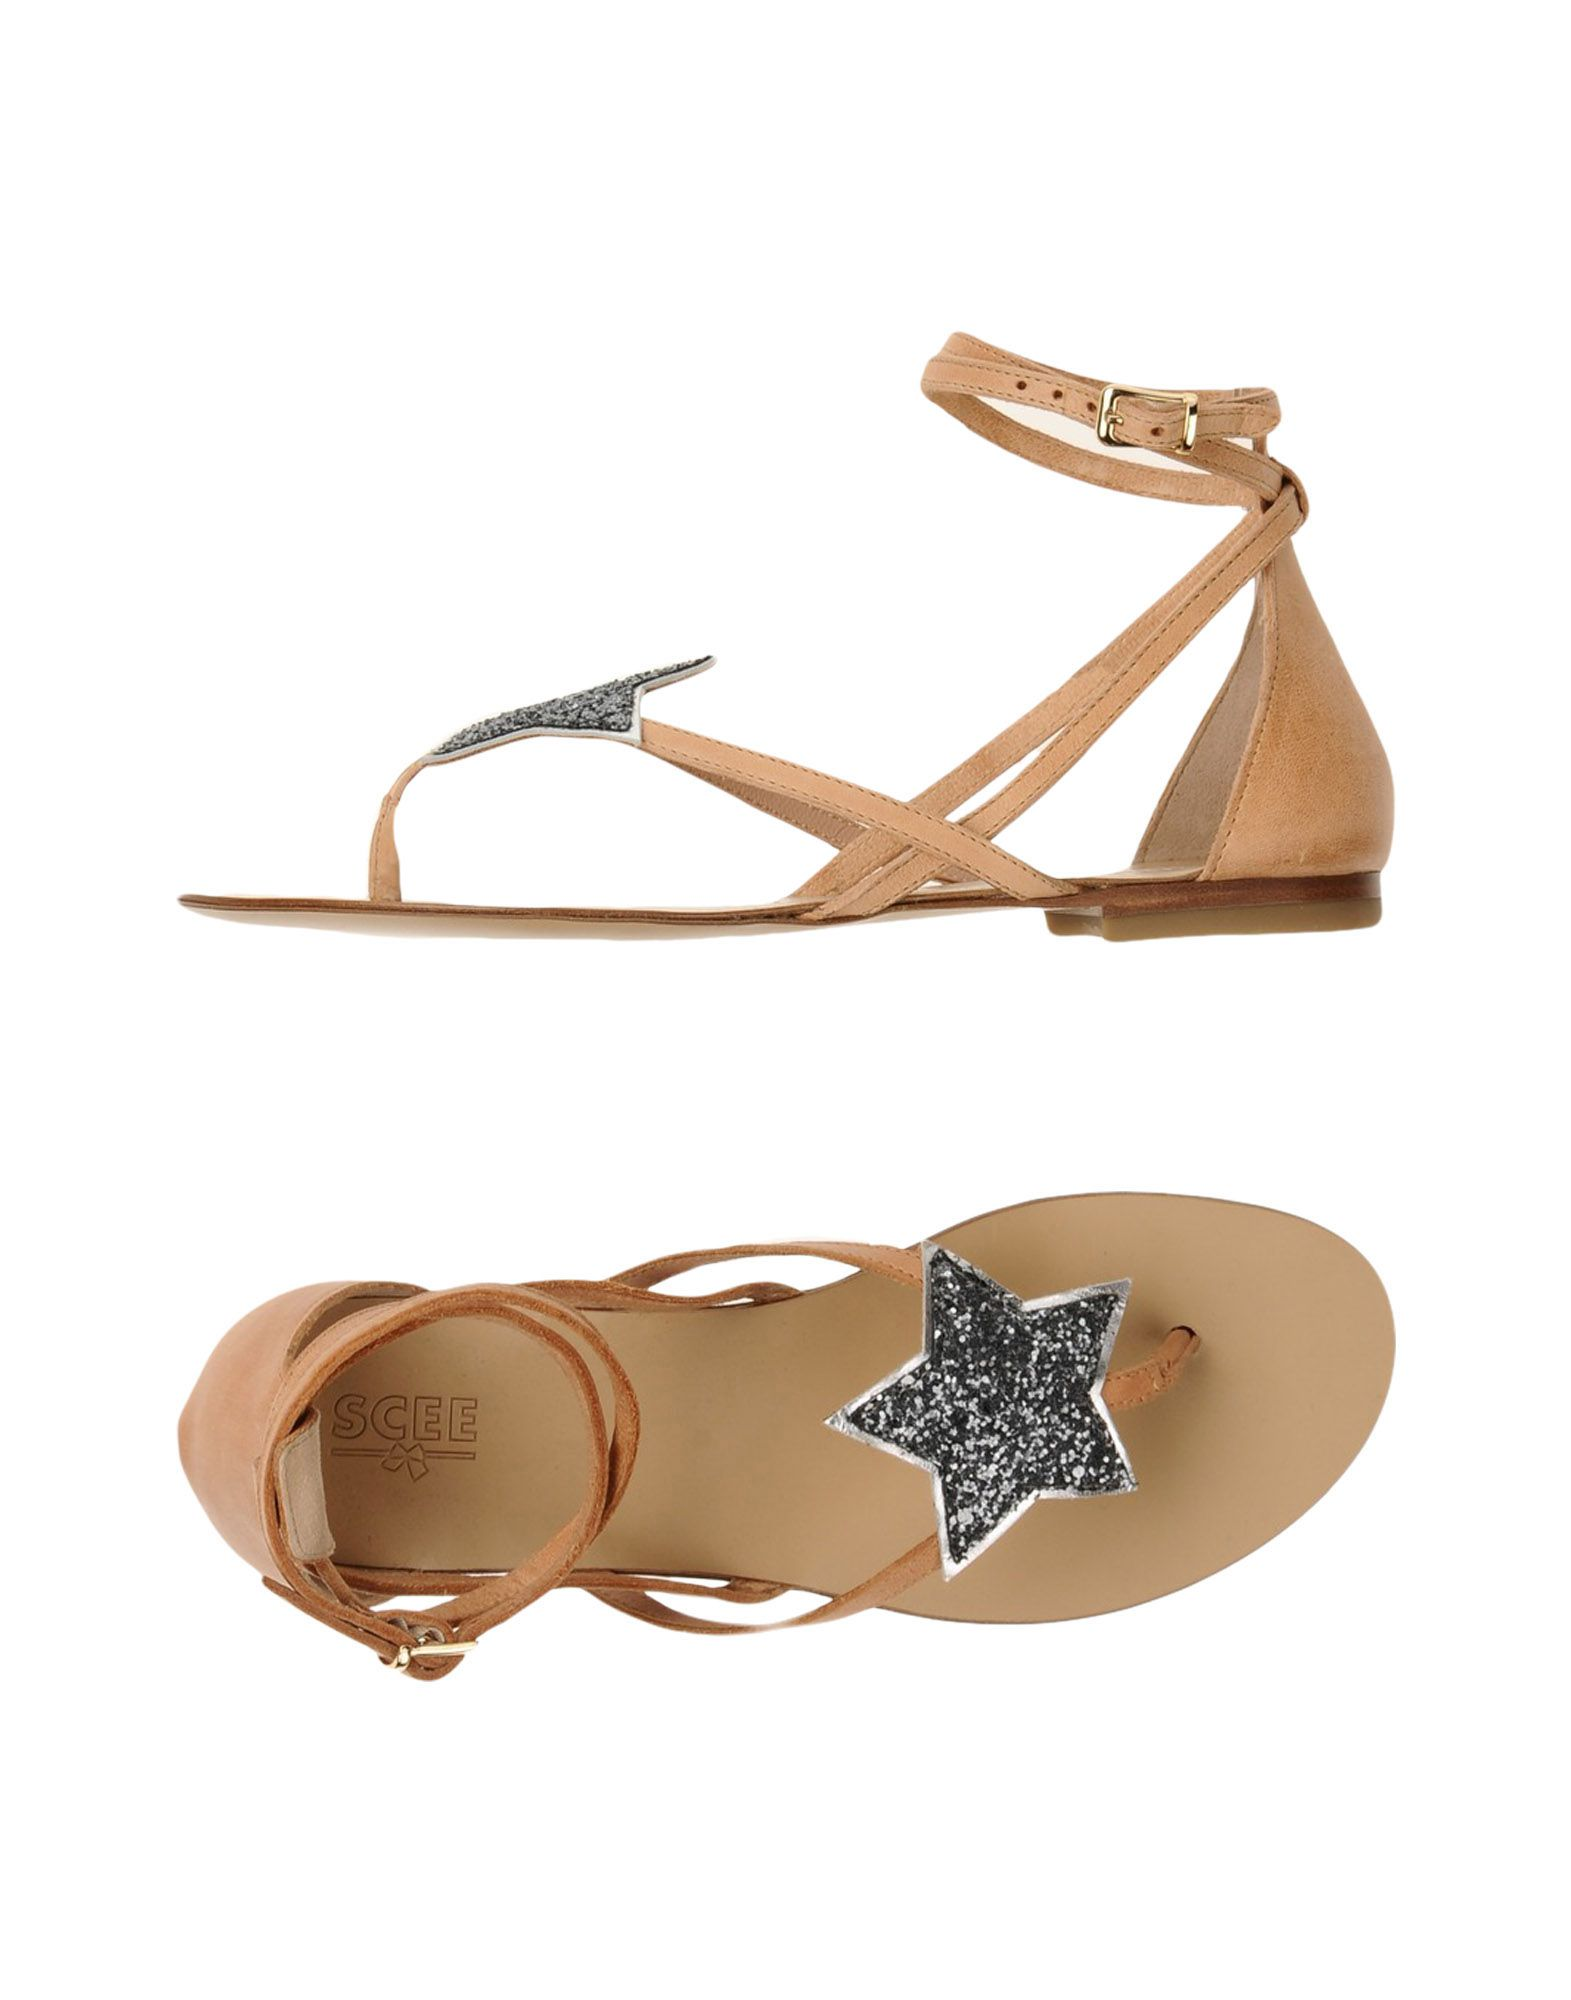 Sandales Scee By Twin-Set Femme - Sandales Scee By Twin-Set sur